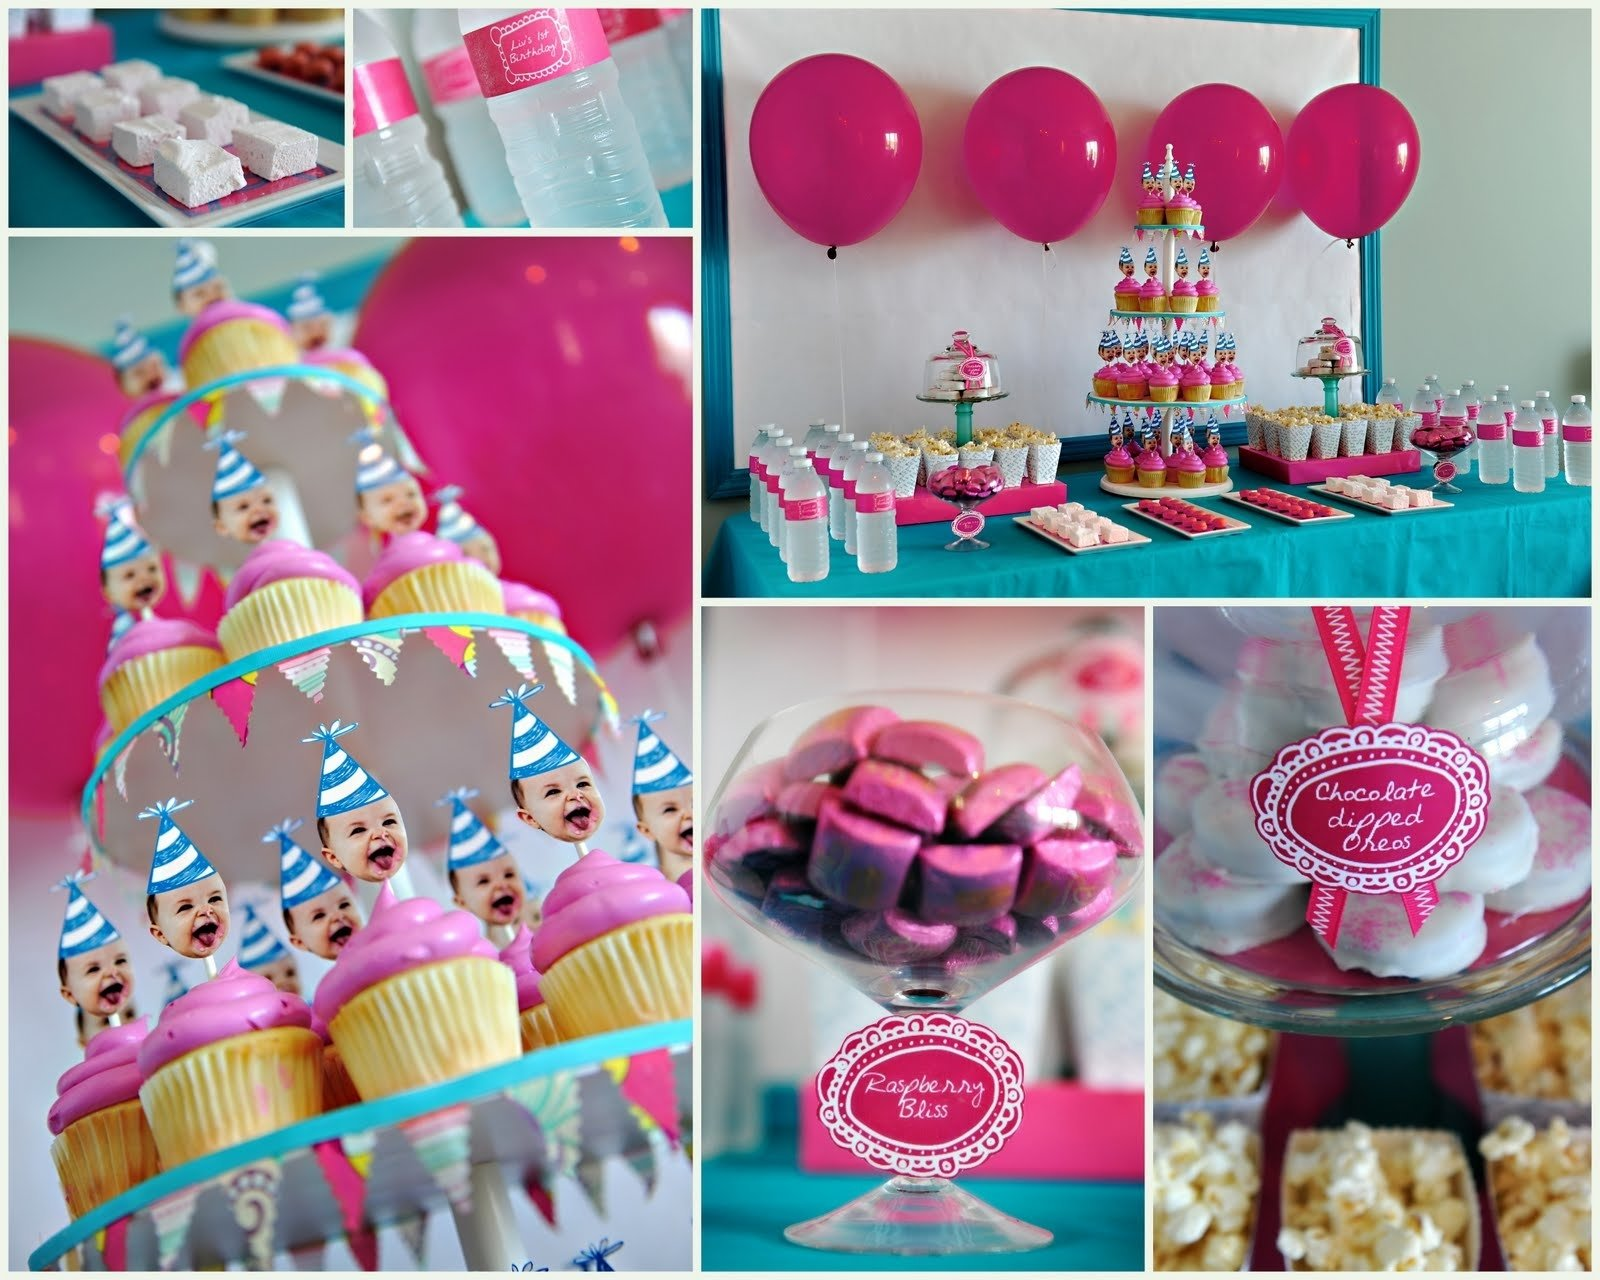 10 Cute One Year Old Birthday Ideas elle belle creative one year old in a flash a first birthday party 5 2020